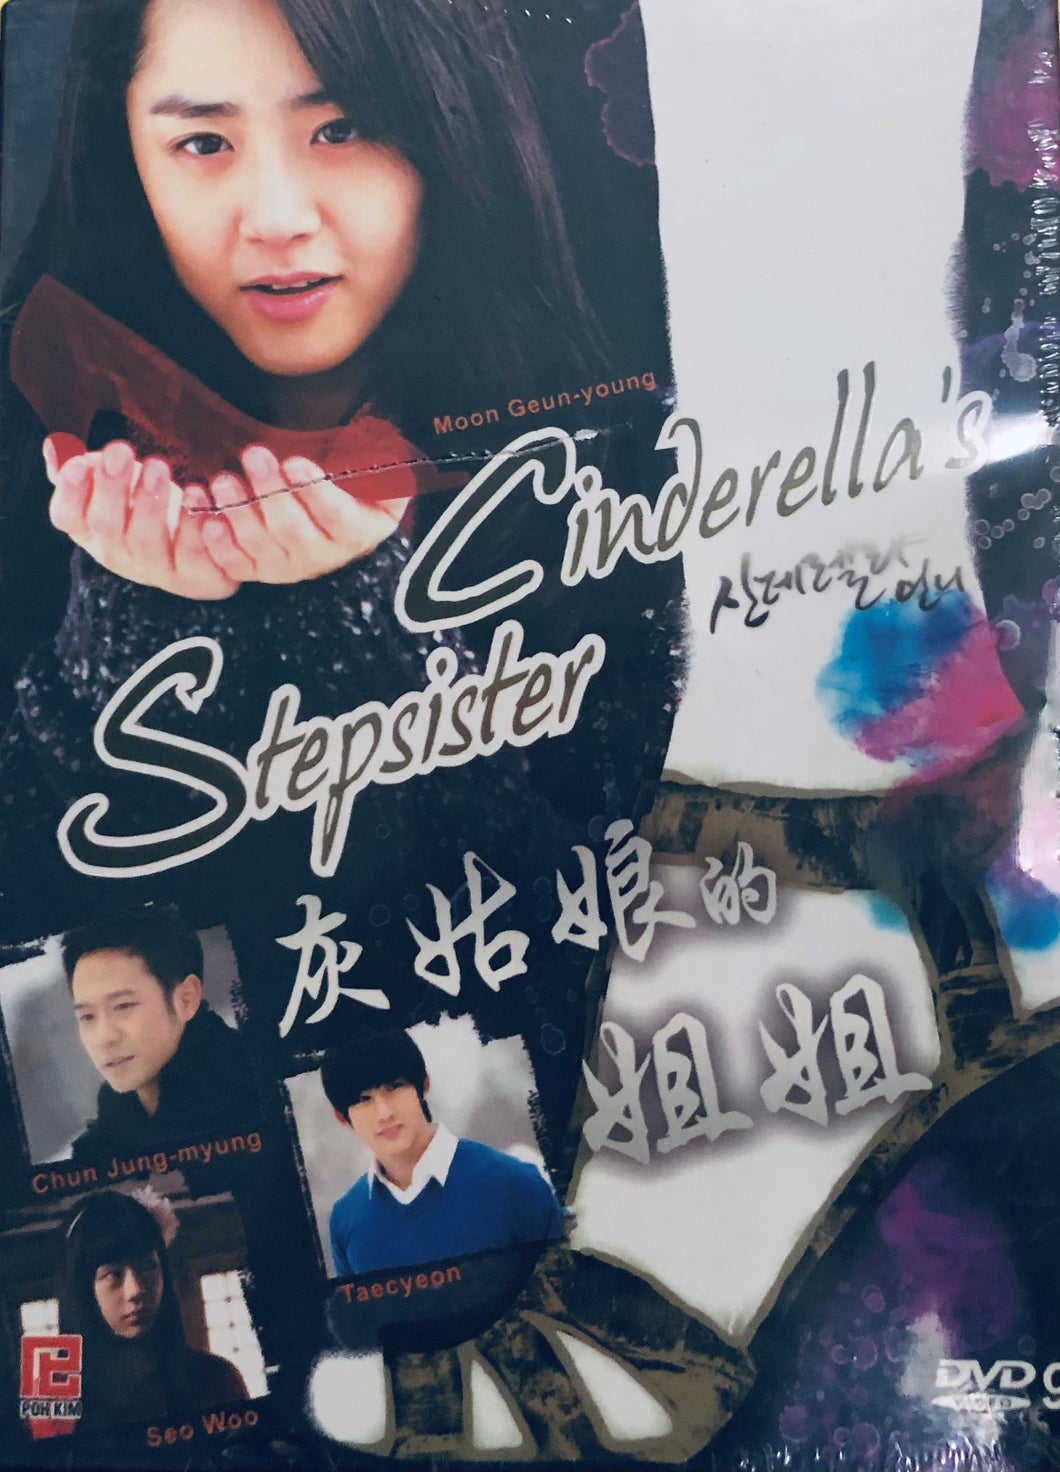 CINDERELLA'S STEPSISTER 2010 KOREAN DRAMA) DVD 1-20 EPISODES ENGLISH SUB (REGION FREE)